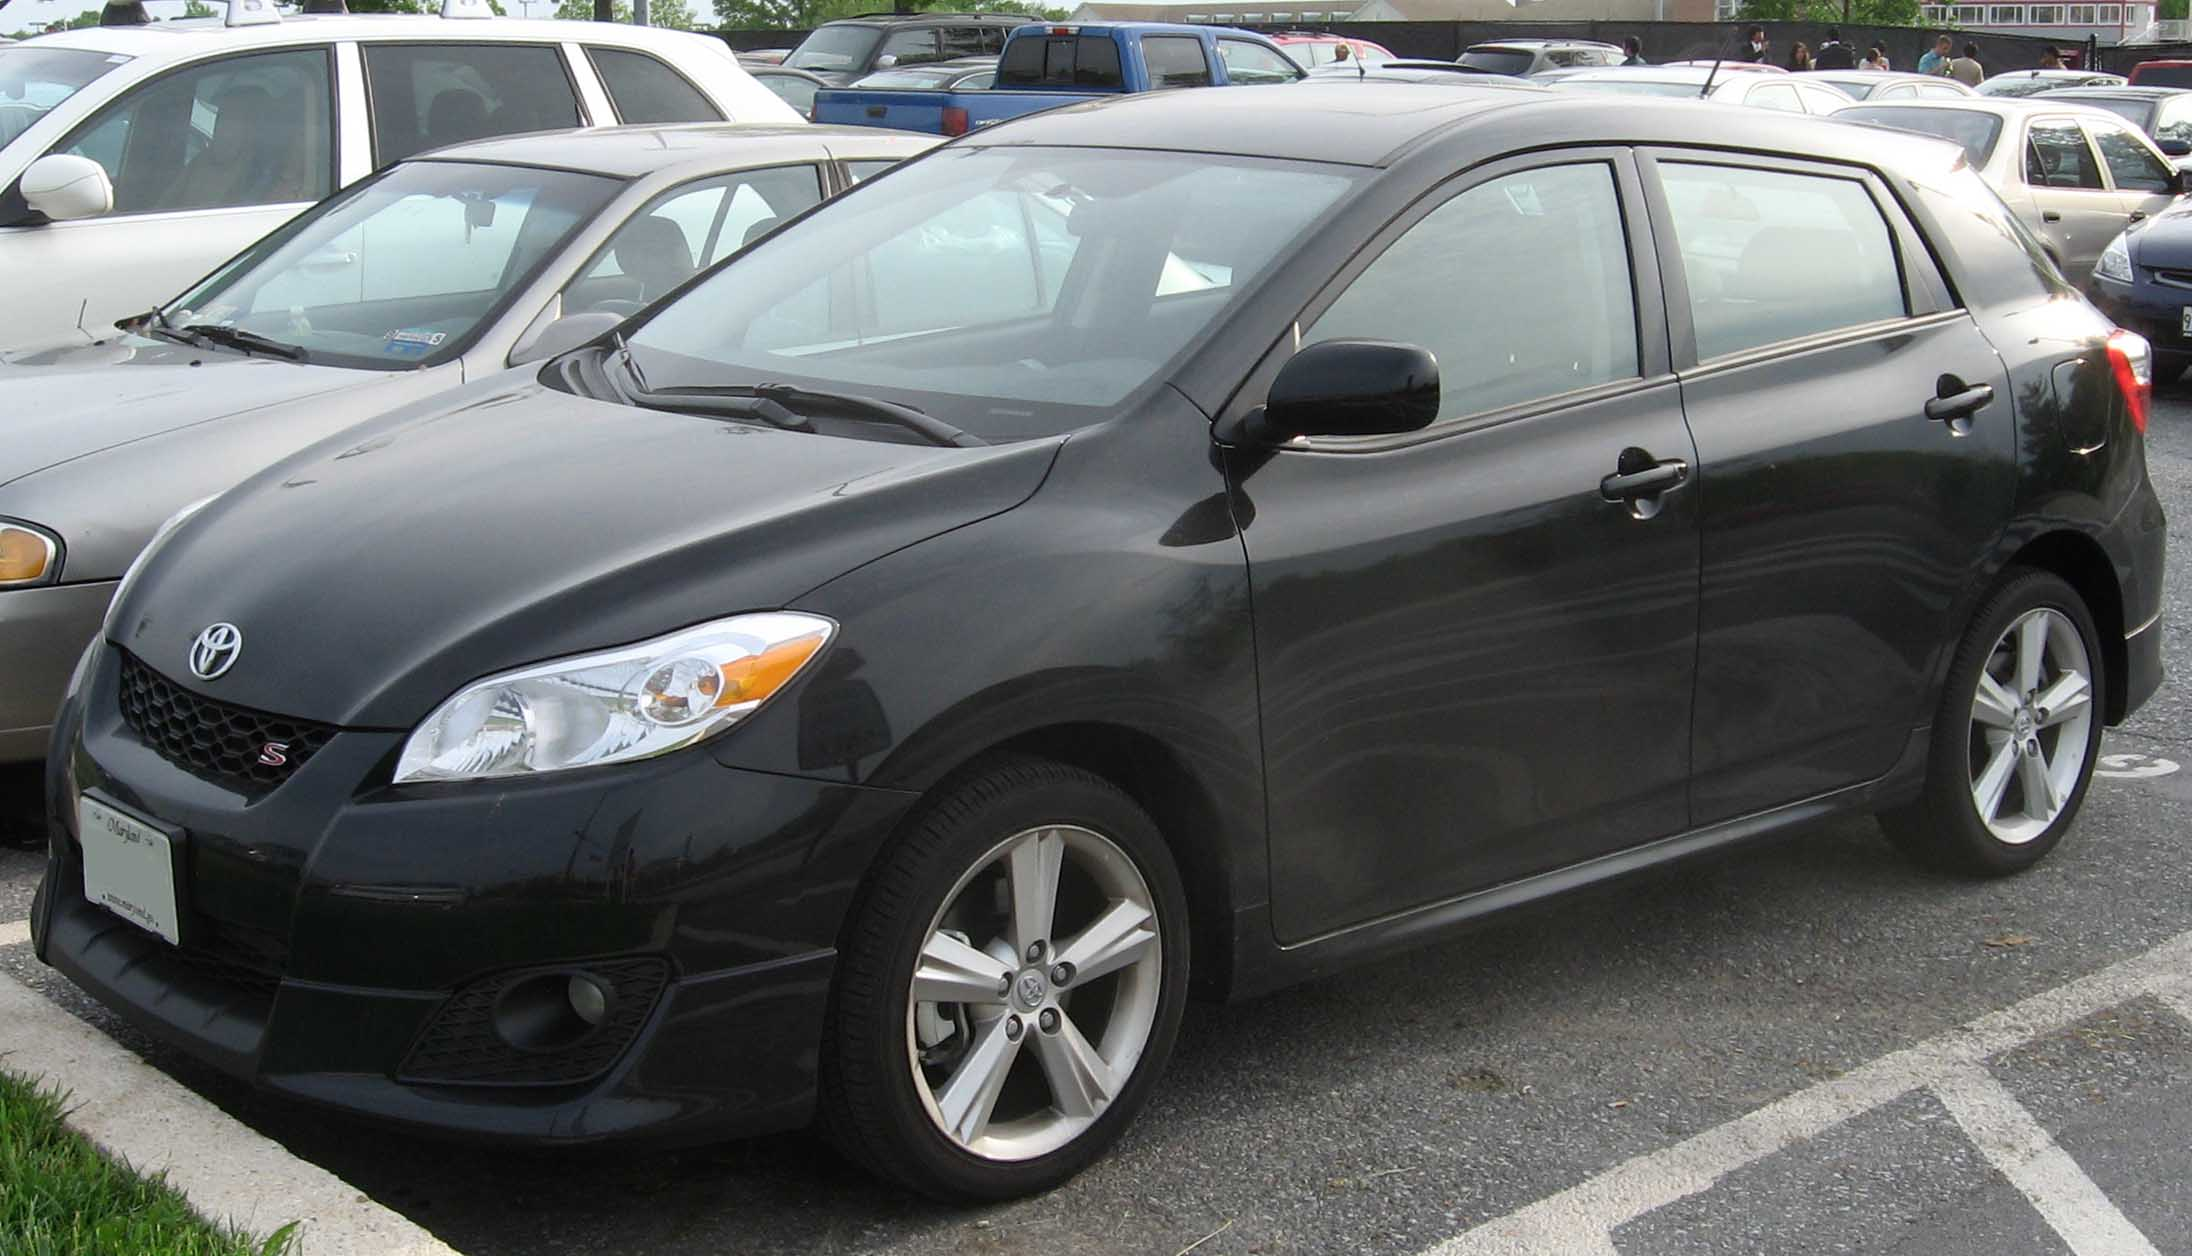 2009 toyota matrix ii pictures information and specs. Black Bedroom Furniture Sets. Home Design Ideas